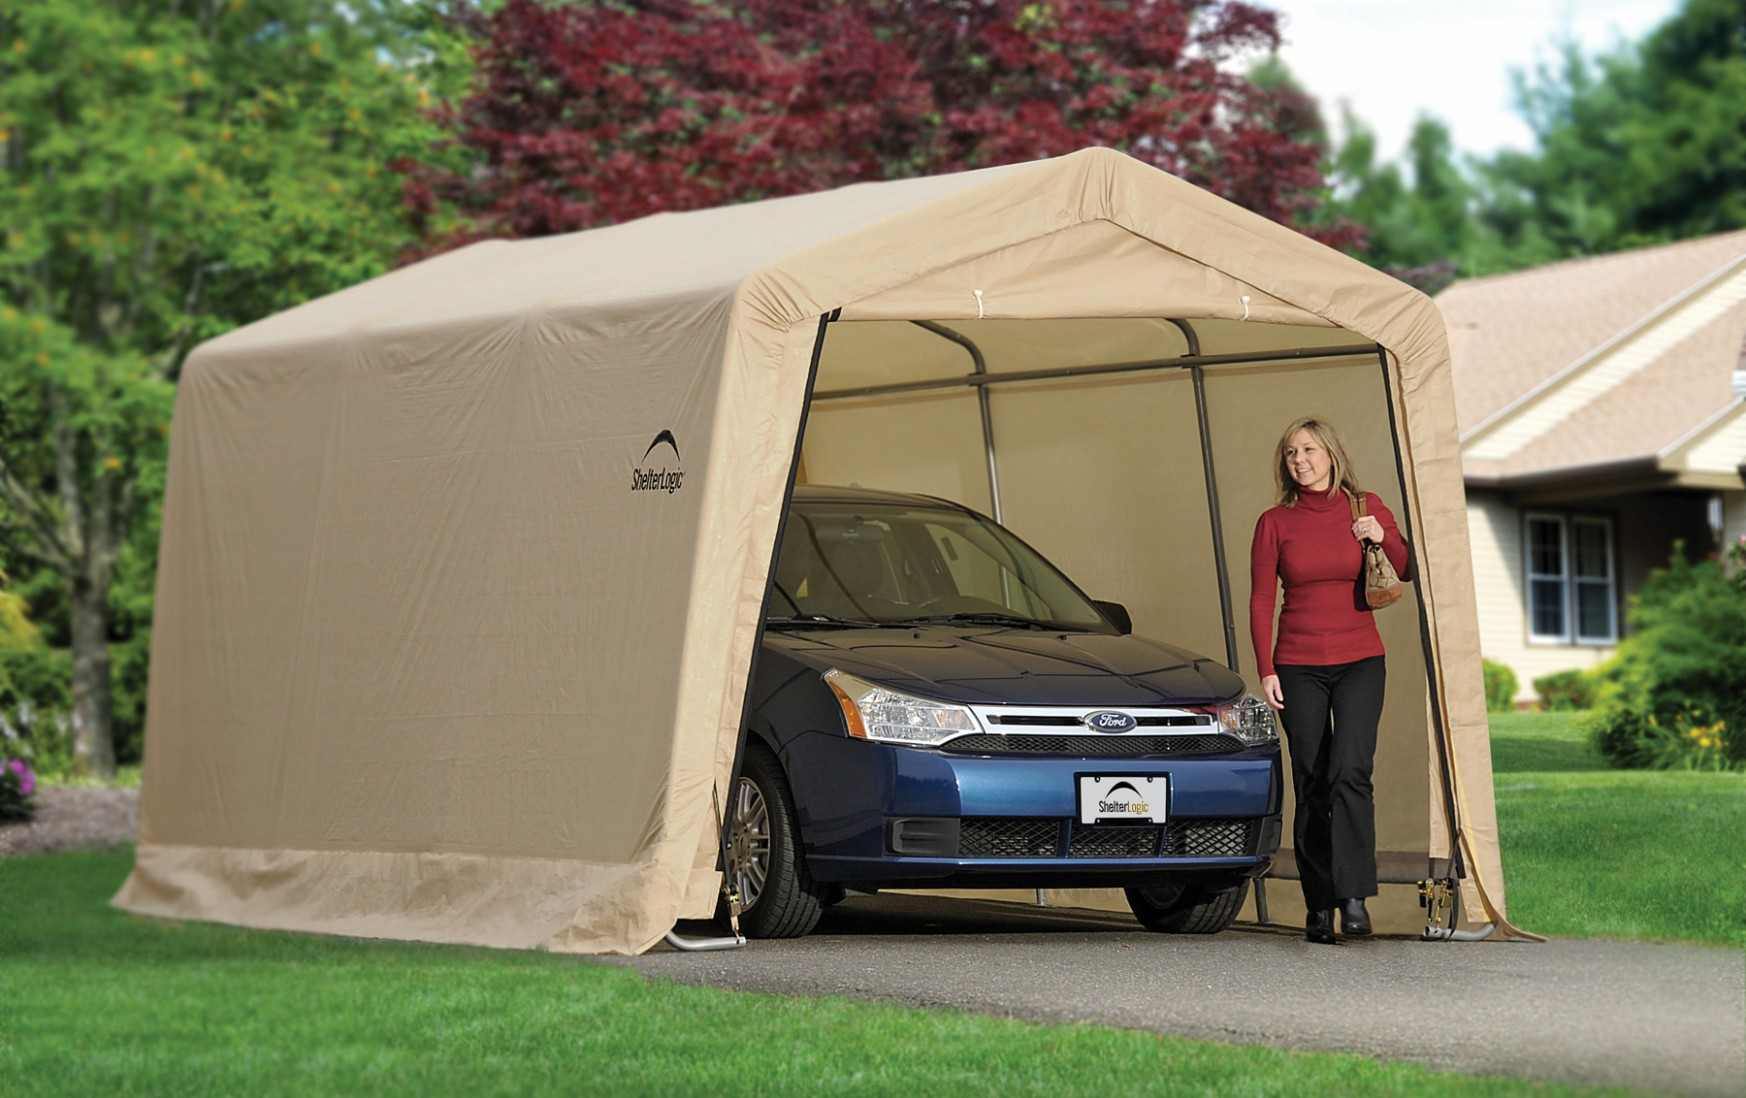 Seven Reasons You Should Fall In Love With Carport For Sale | carport for sale